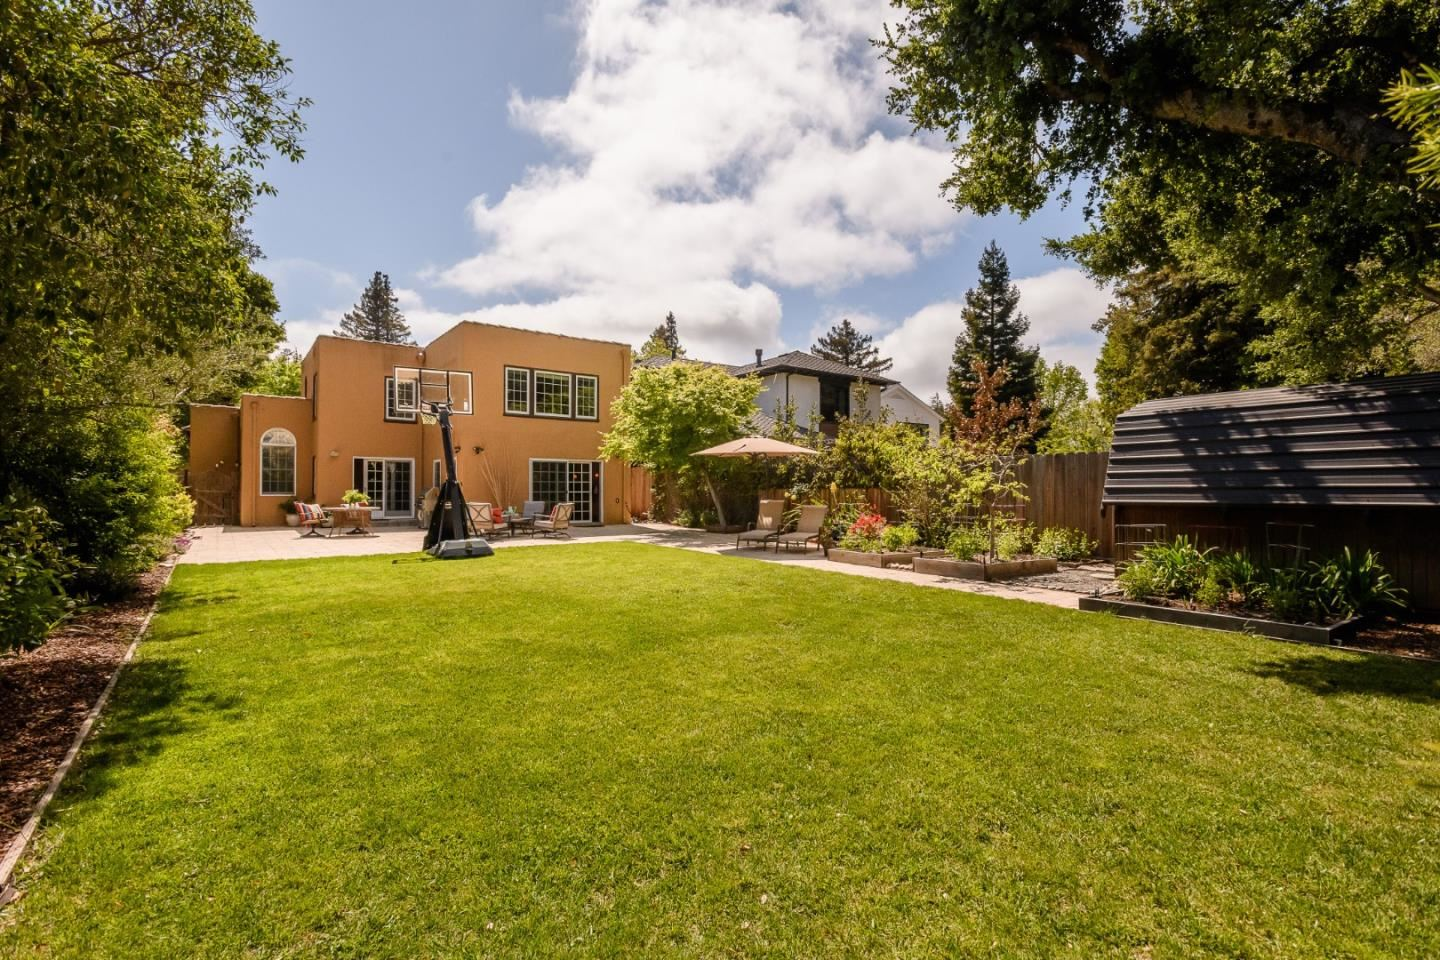 766 Walnut Avenue, Burlingame, CA 94010 - #: ML81833892